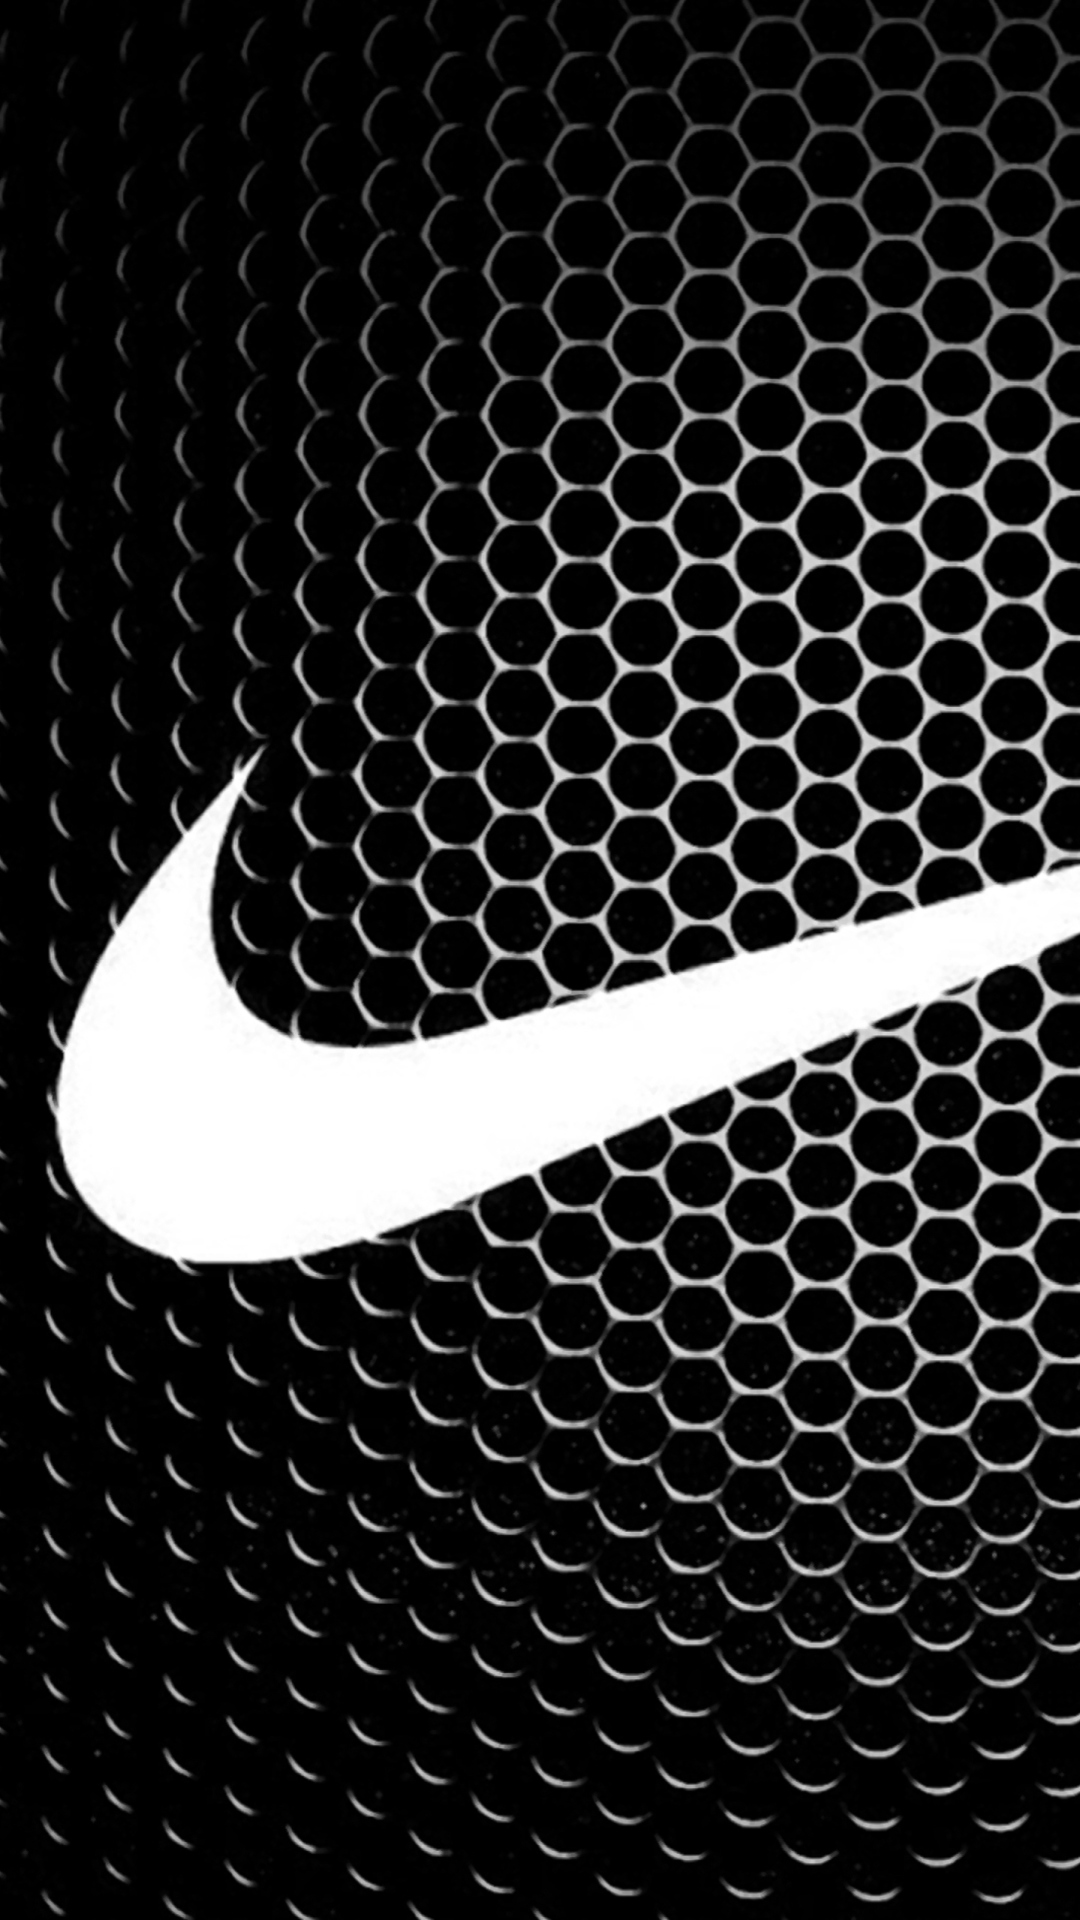 Free Fall Mobile Phone Wallpapers Download Free Nike Wallpapers For Iphone Pixelstalk Net